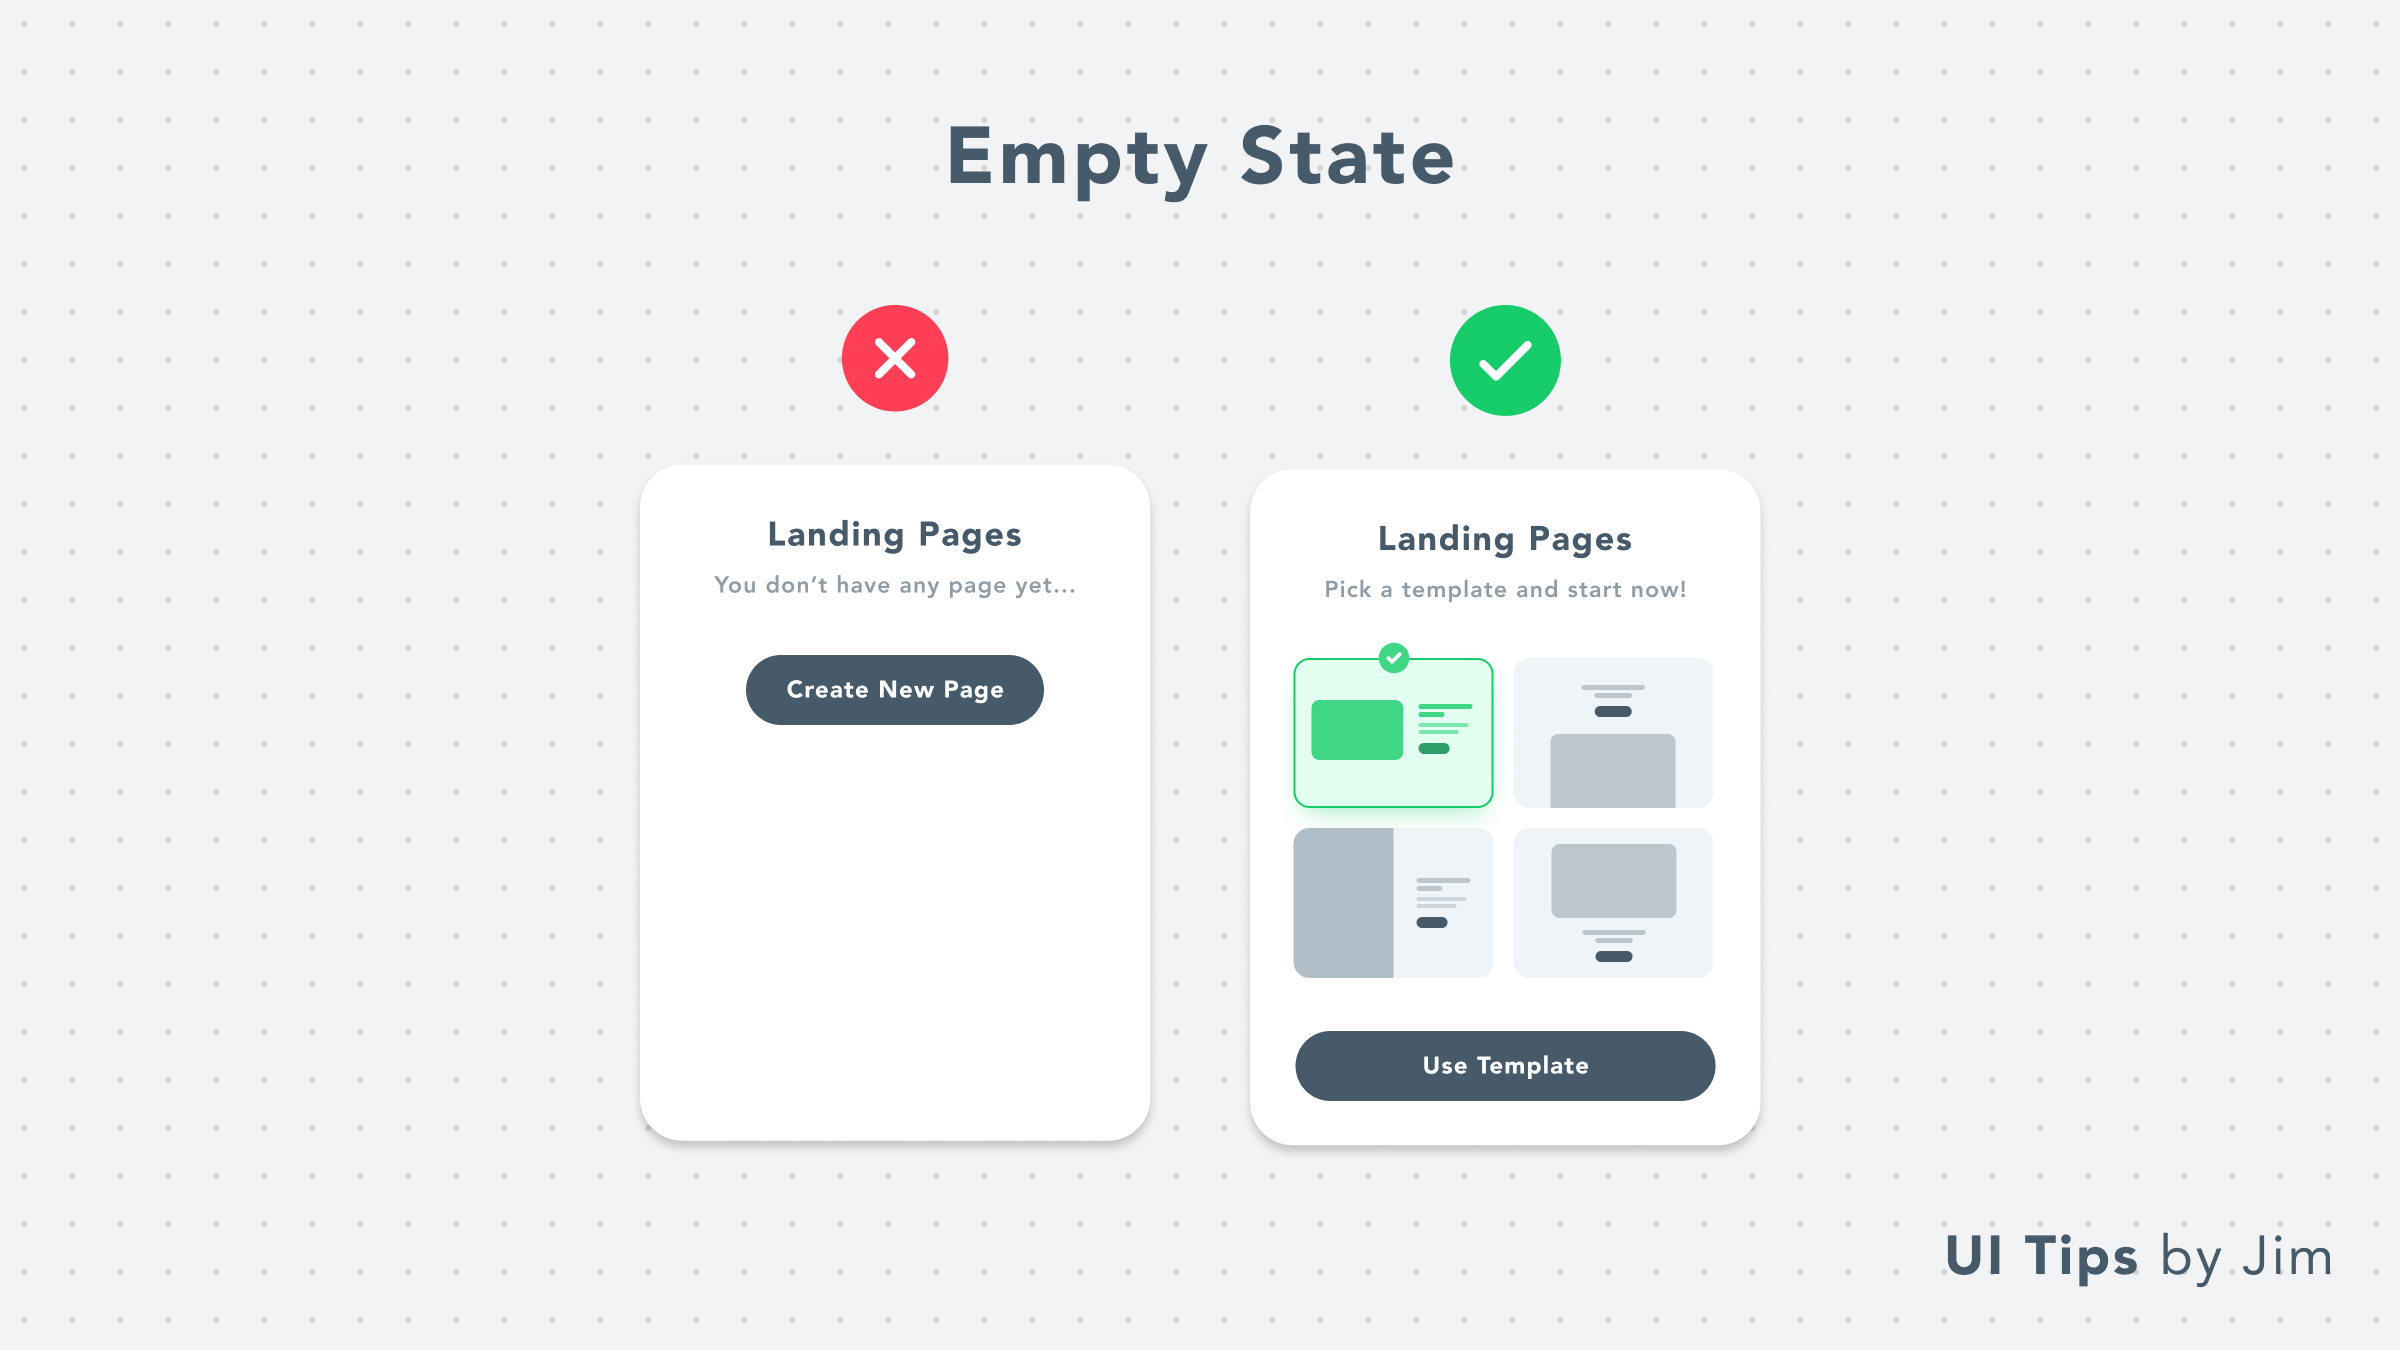 Empty State With Templates